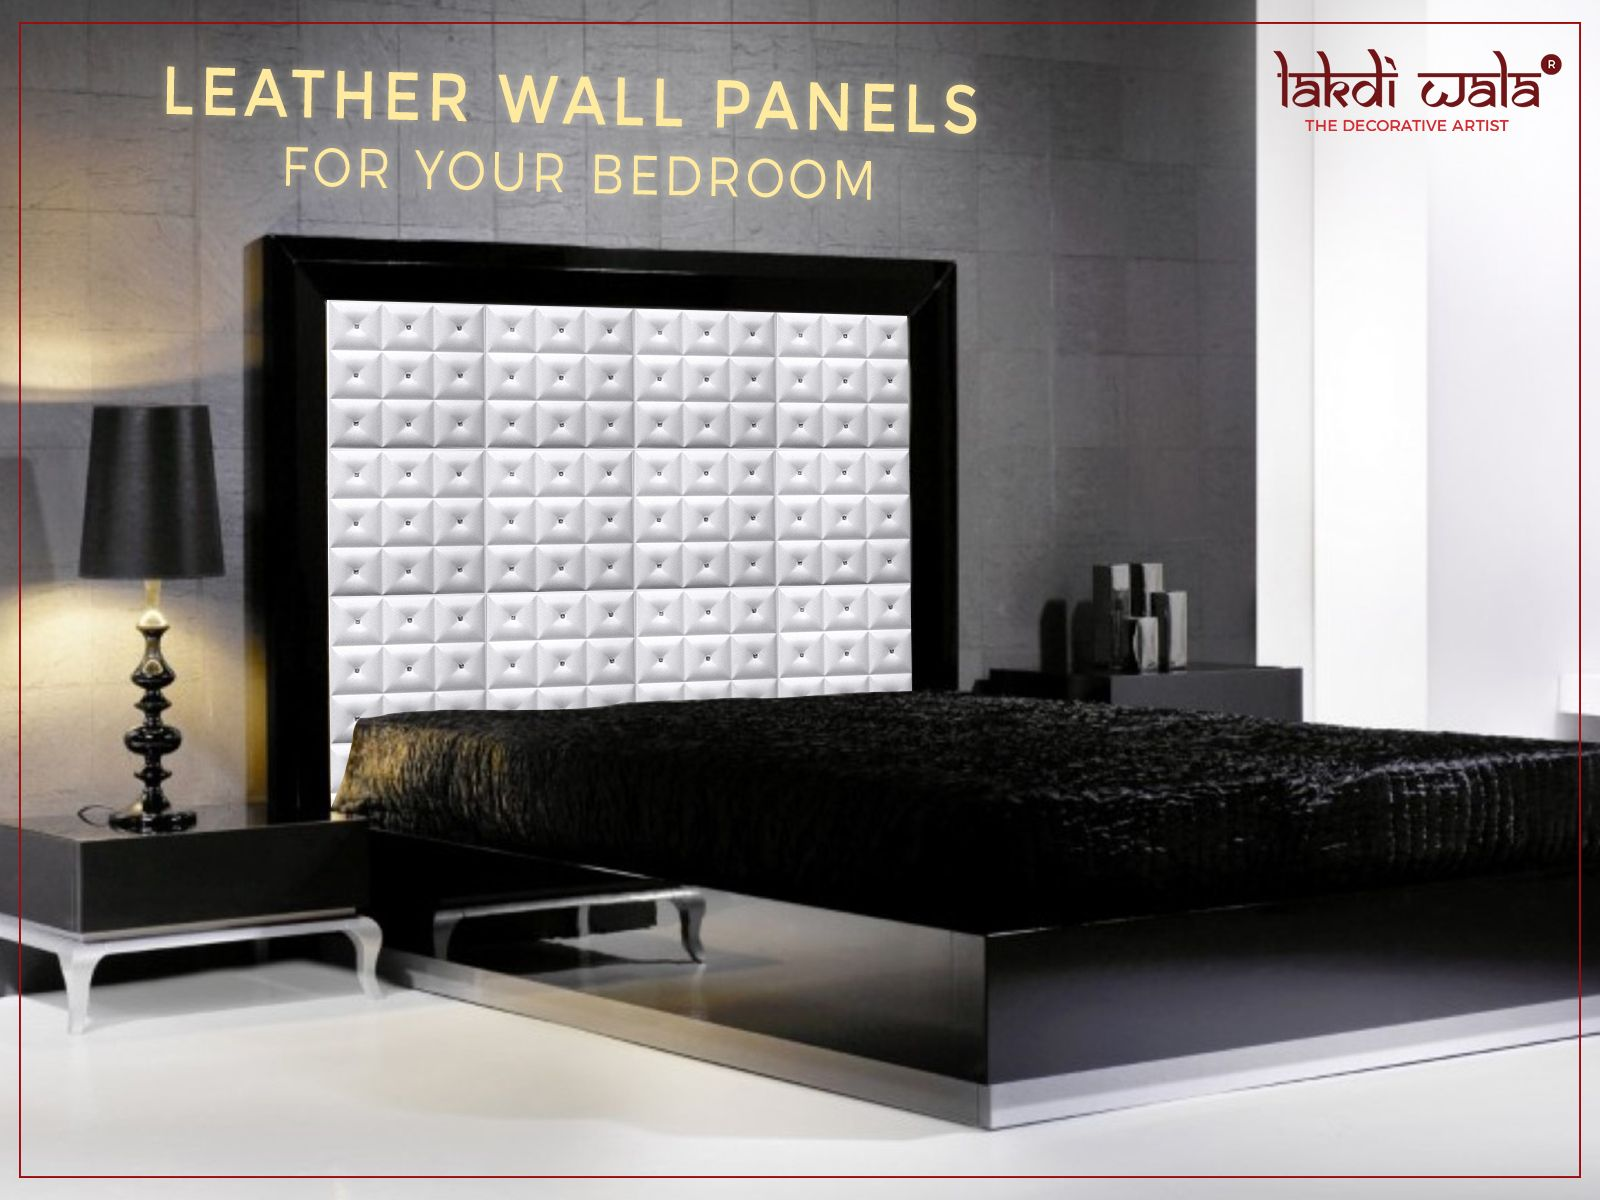 Shabby Chic Wall Paneling : Our panels provide a chic and classy look to your bedrooms. choose